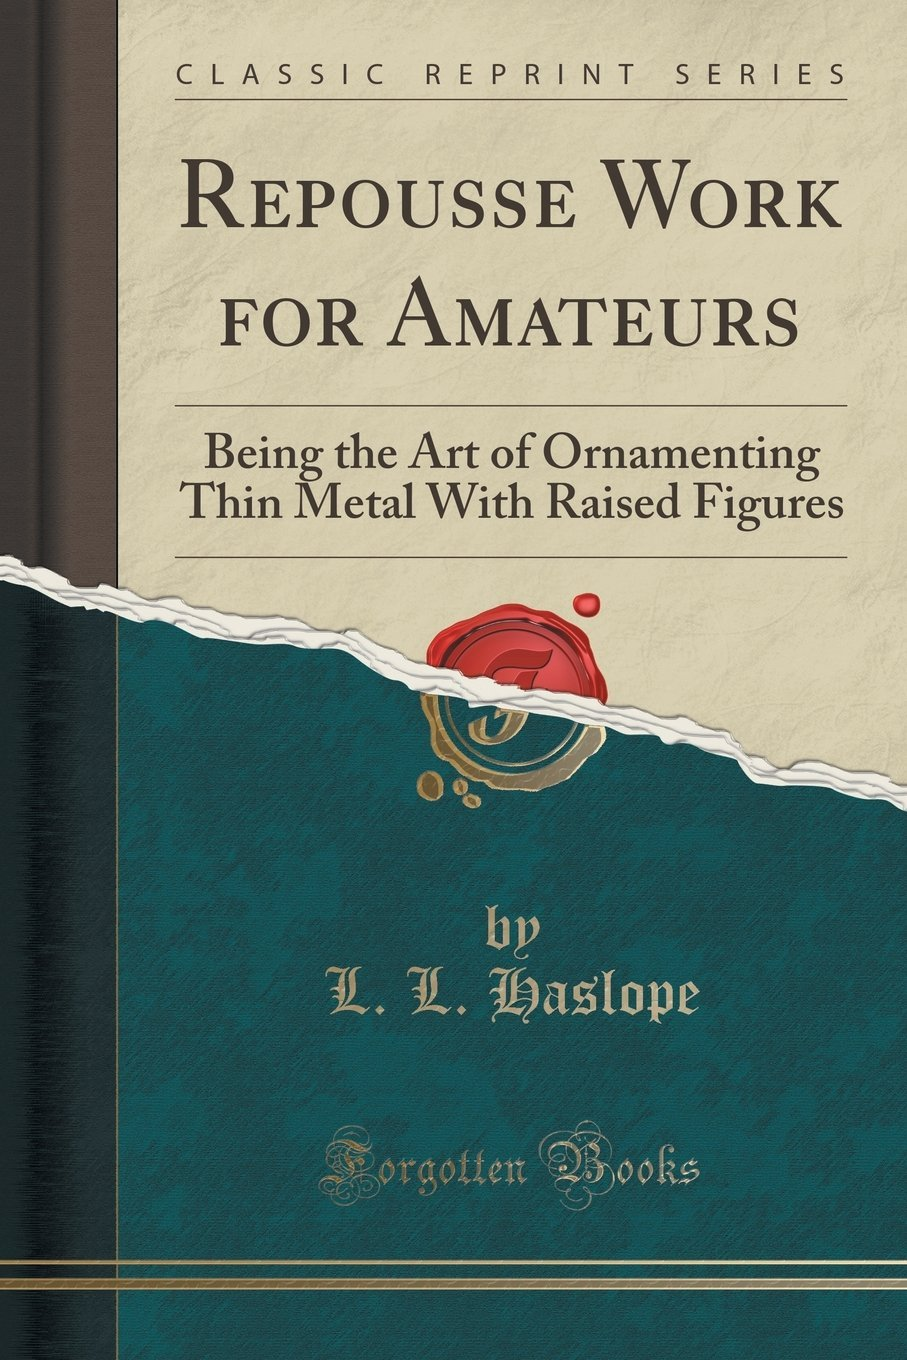 Repousse Work for Amateurs: Being the Art of Ornamenting Thin Metal with Raised Figures L.L. Haslope